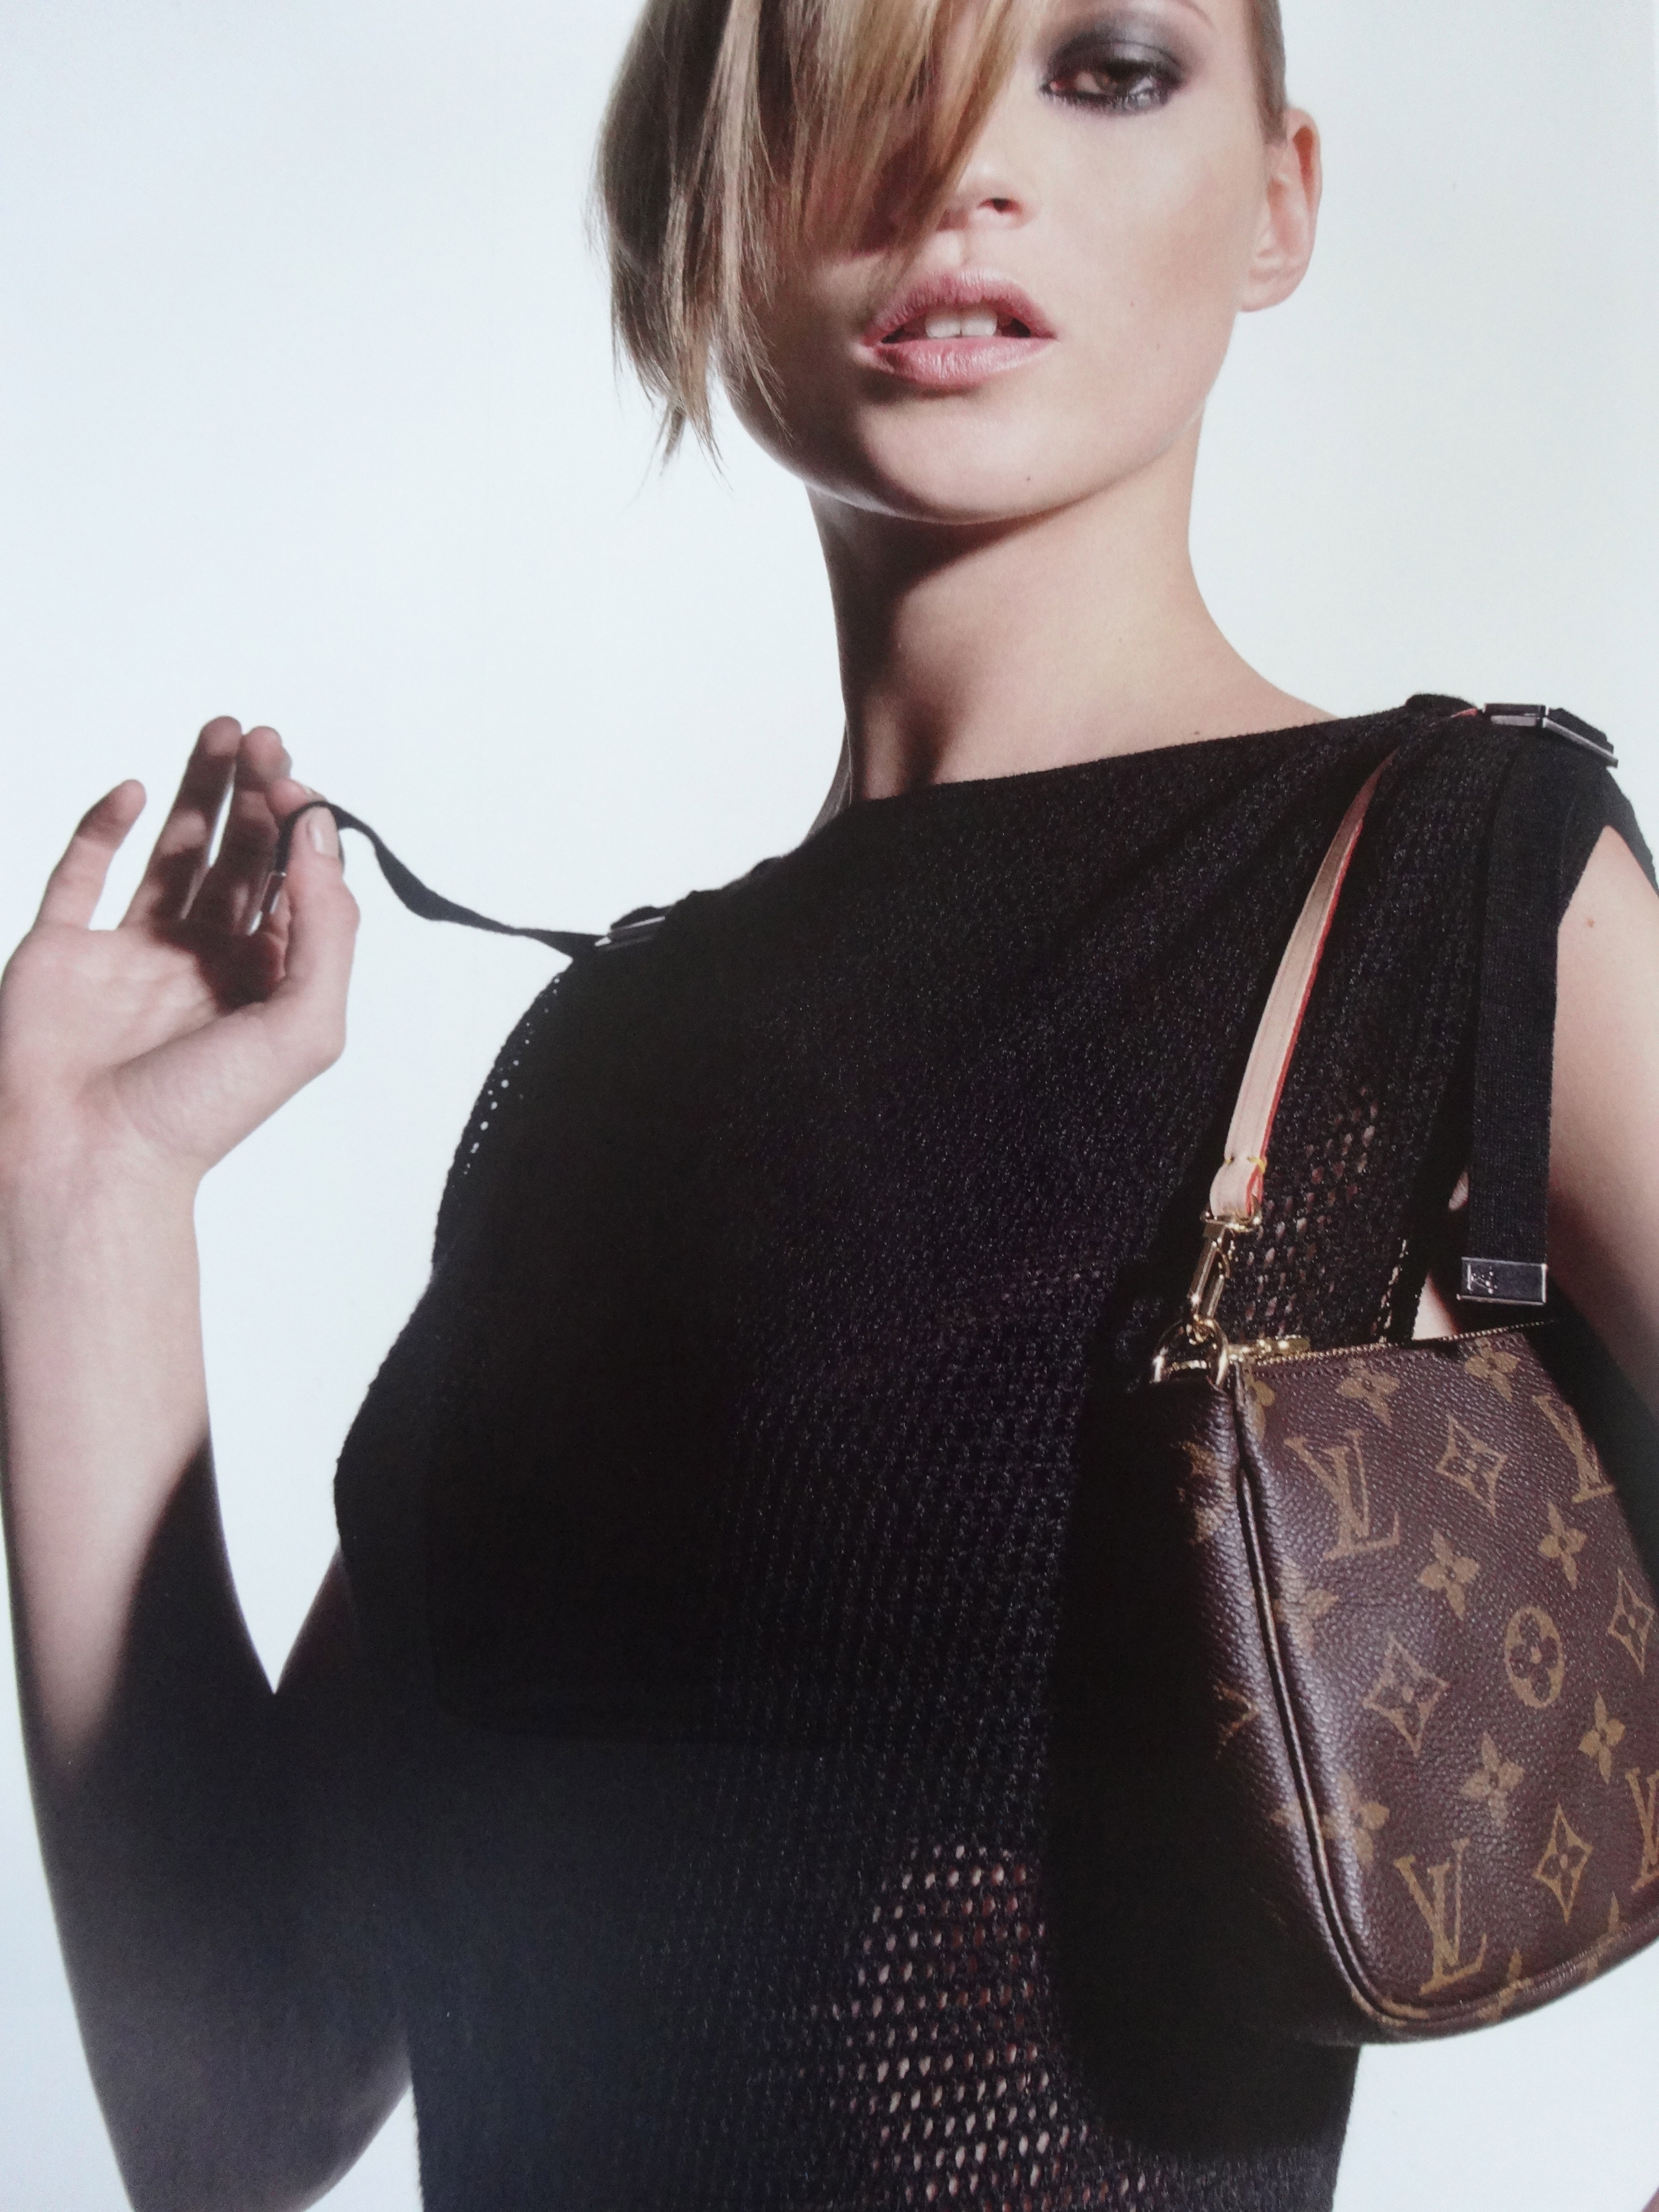 Kate Moss with Pochette Accessoires, ad 2001, (c) Louis Vuitton